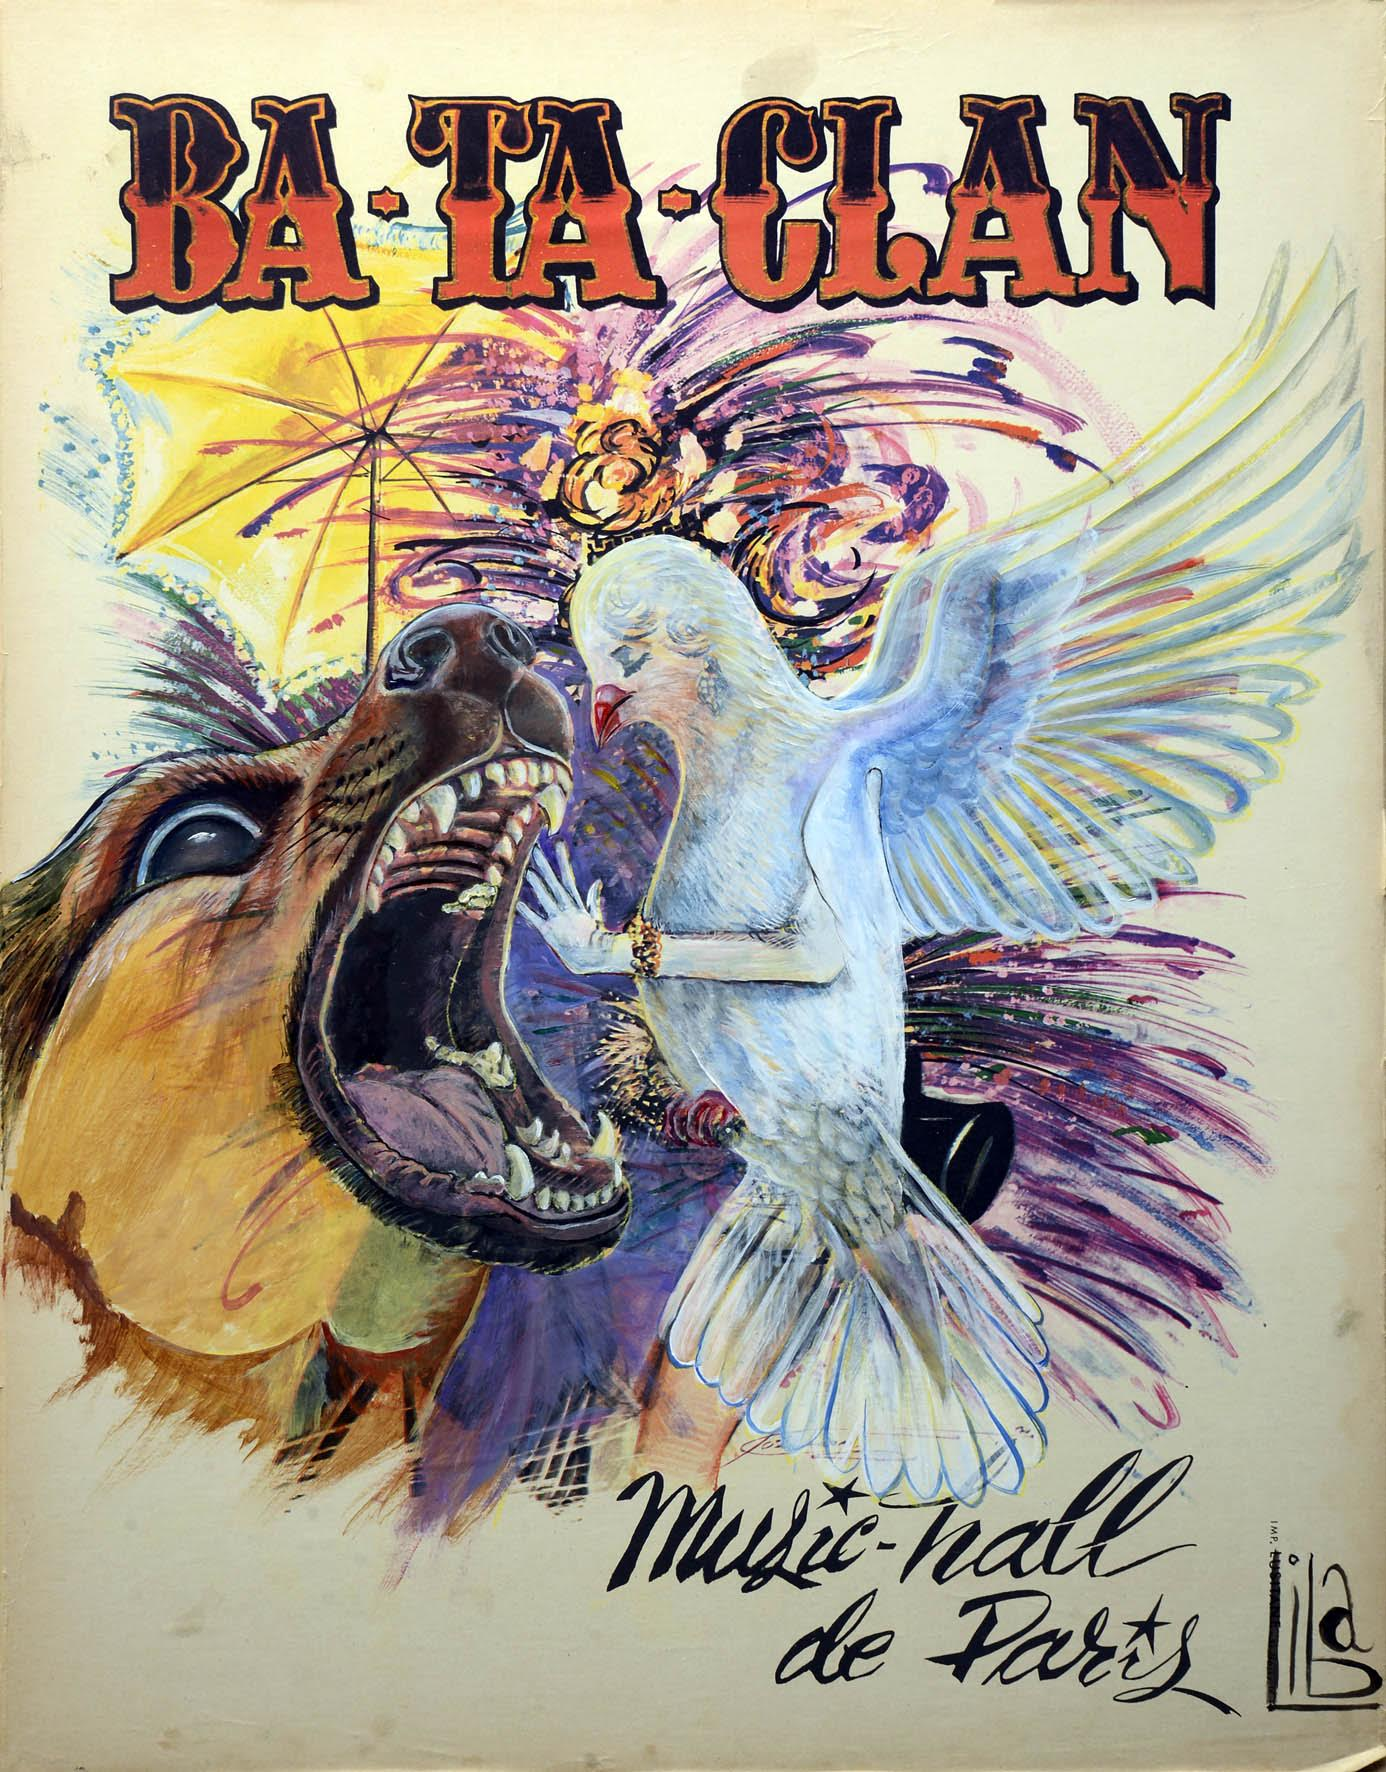 Bataclan Poster overpainted